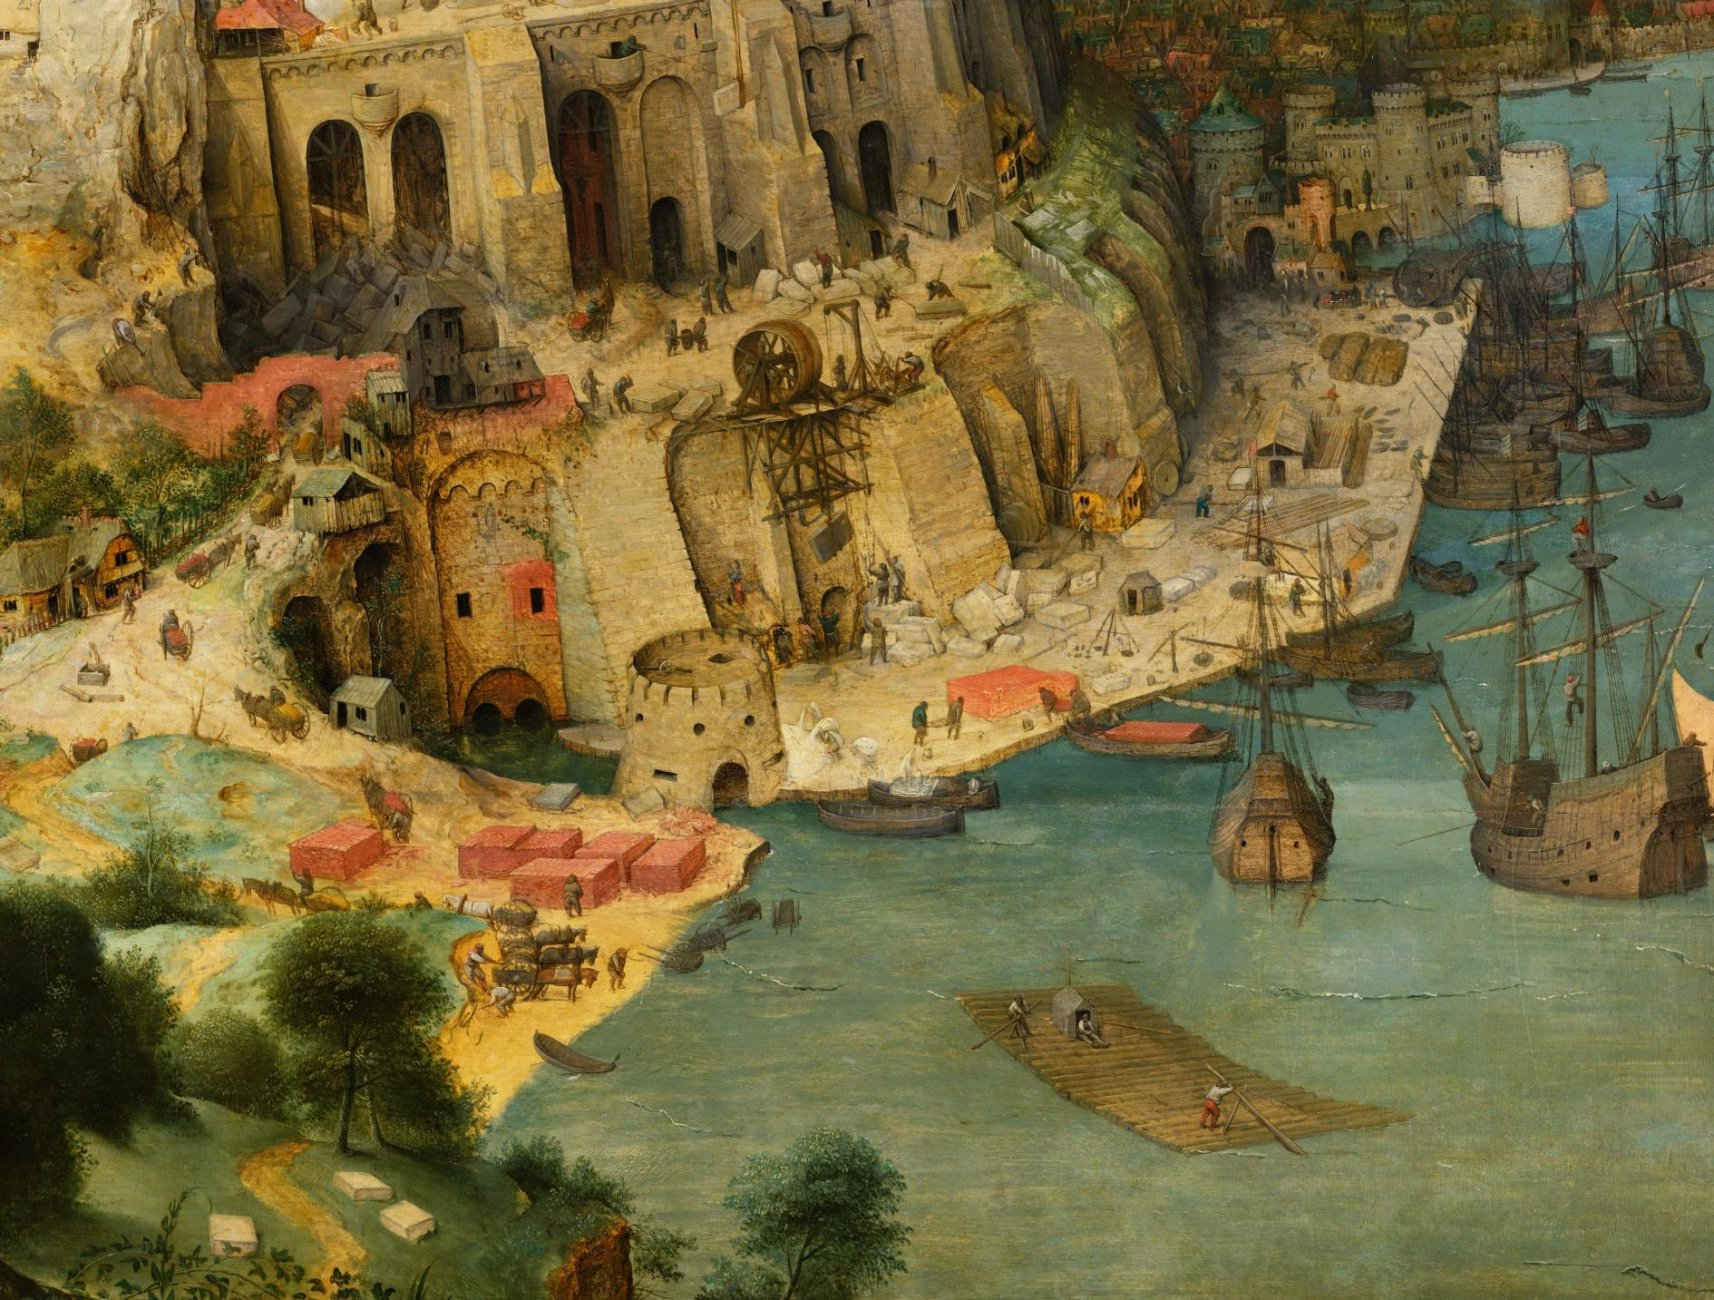 tower_of_babel__by_pieter_bruegel__1563__by_eraph-d5ttxj71.jpg